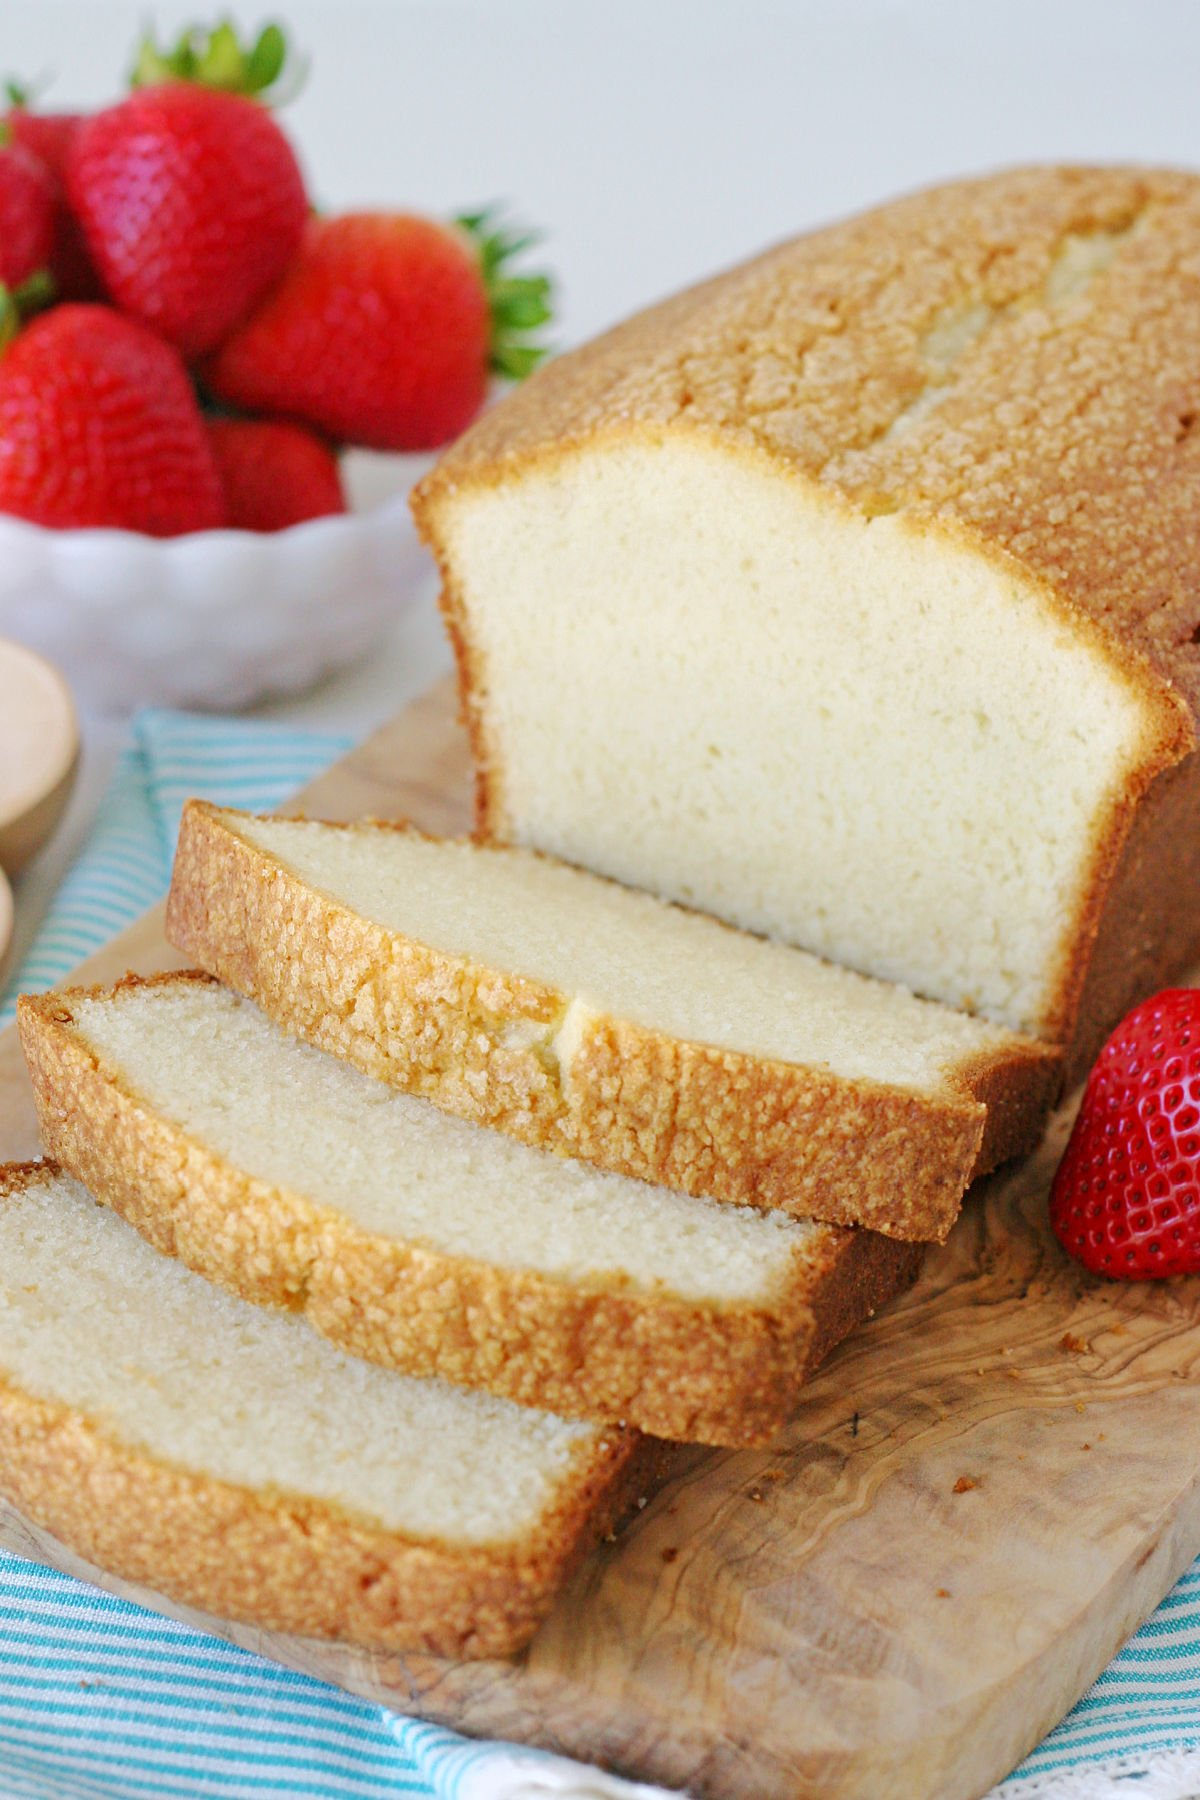 easy pound cake recipe cut up on wood board with strawberries in background.